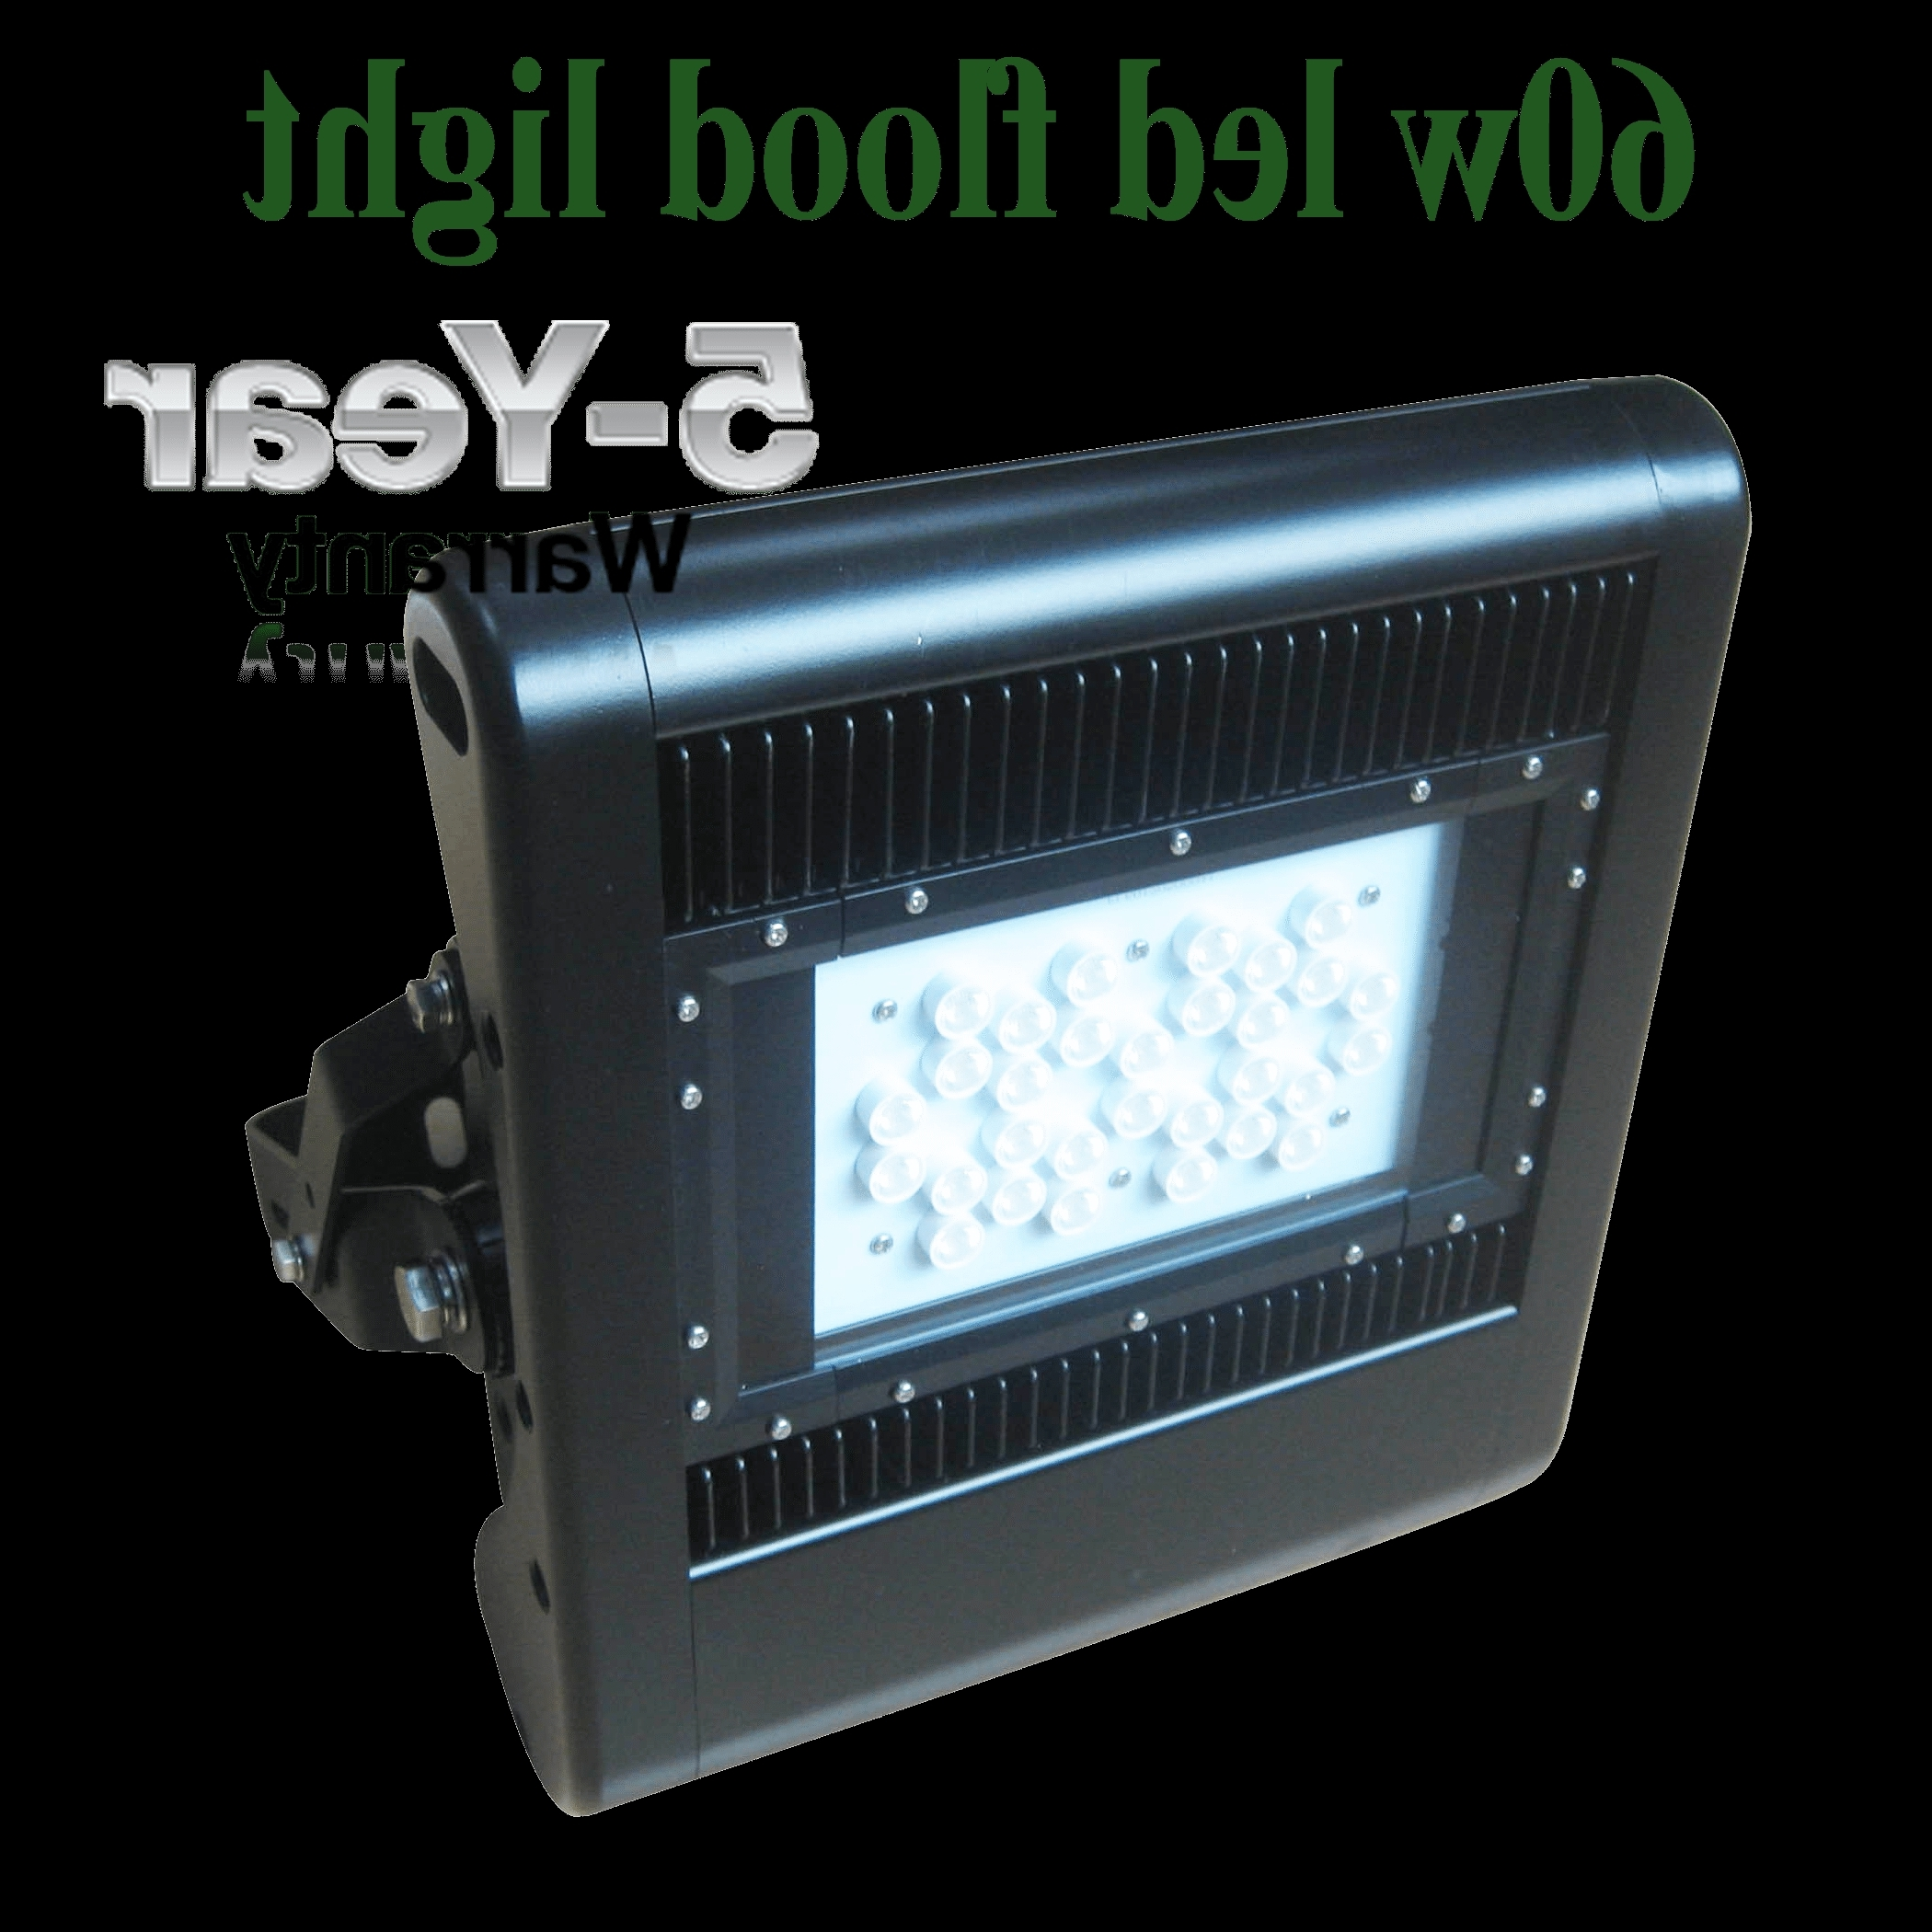 Well Known Outdoor Battery Lights Homebase • Outdoor Lighting Throughout Outdoor Wall Lights At Homebase (View 17 of 20)